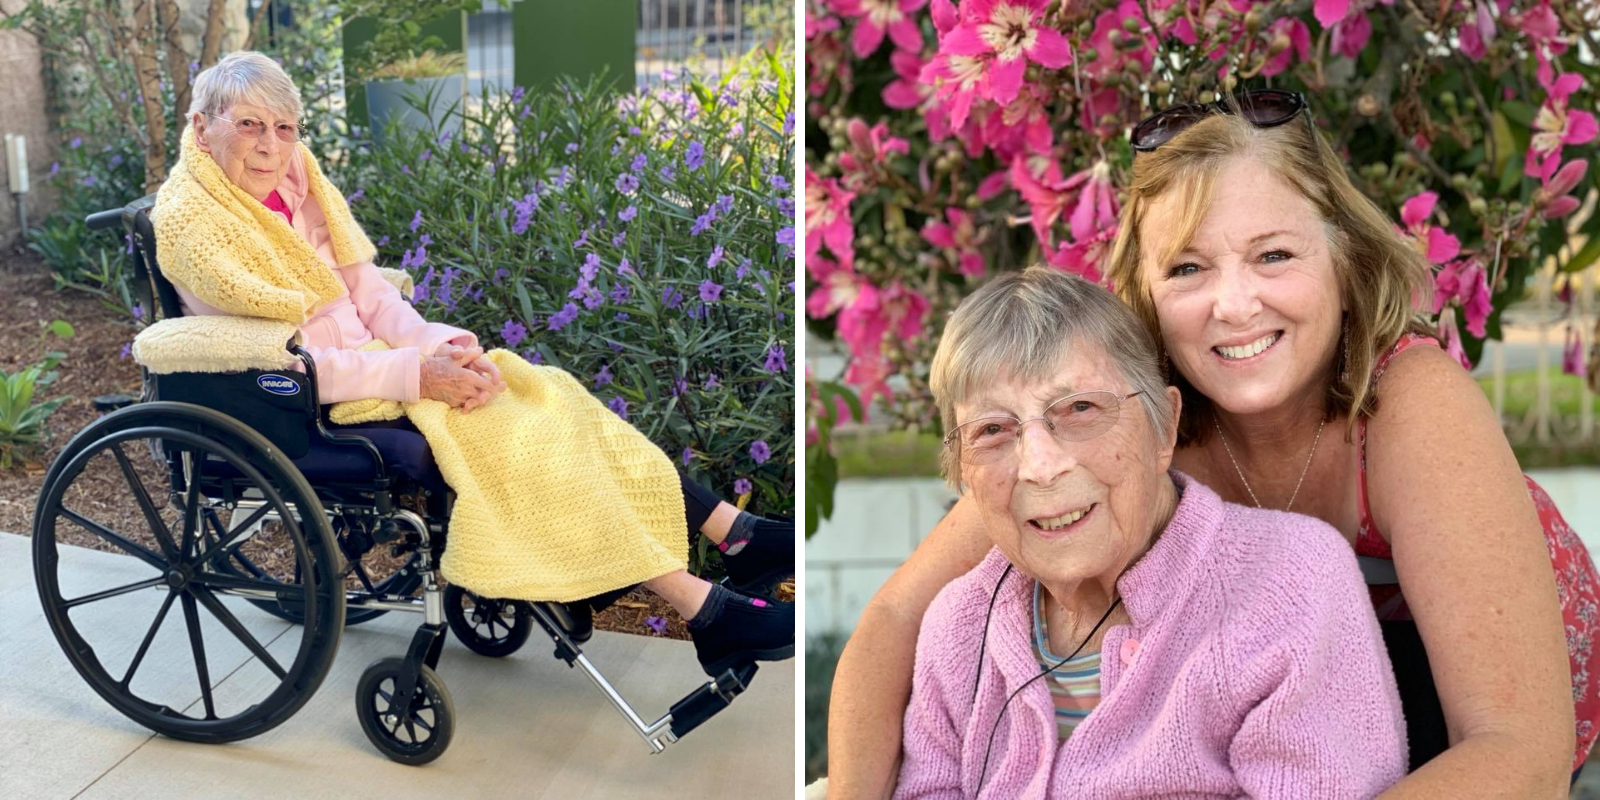 HEARTBREAKING: 99-year-old mother dies of COVID-19 in California nursing home under lockdown after months of isolation from family